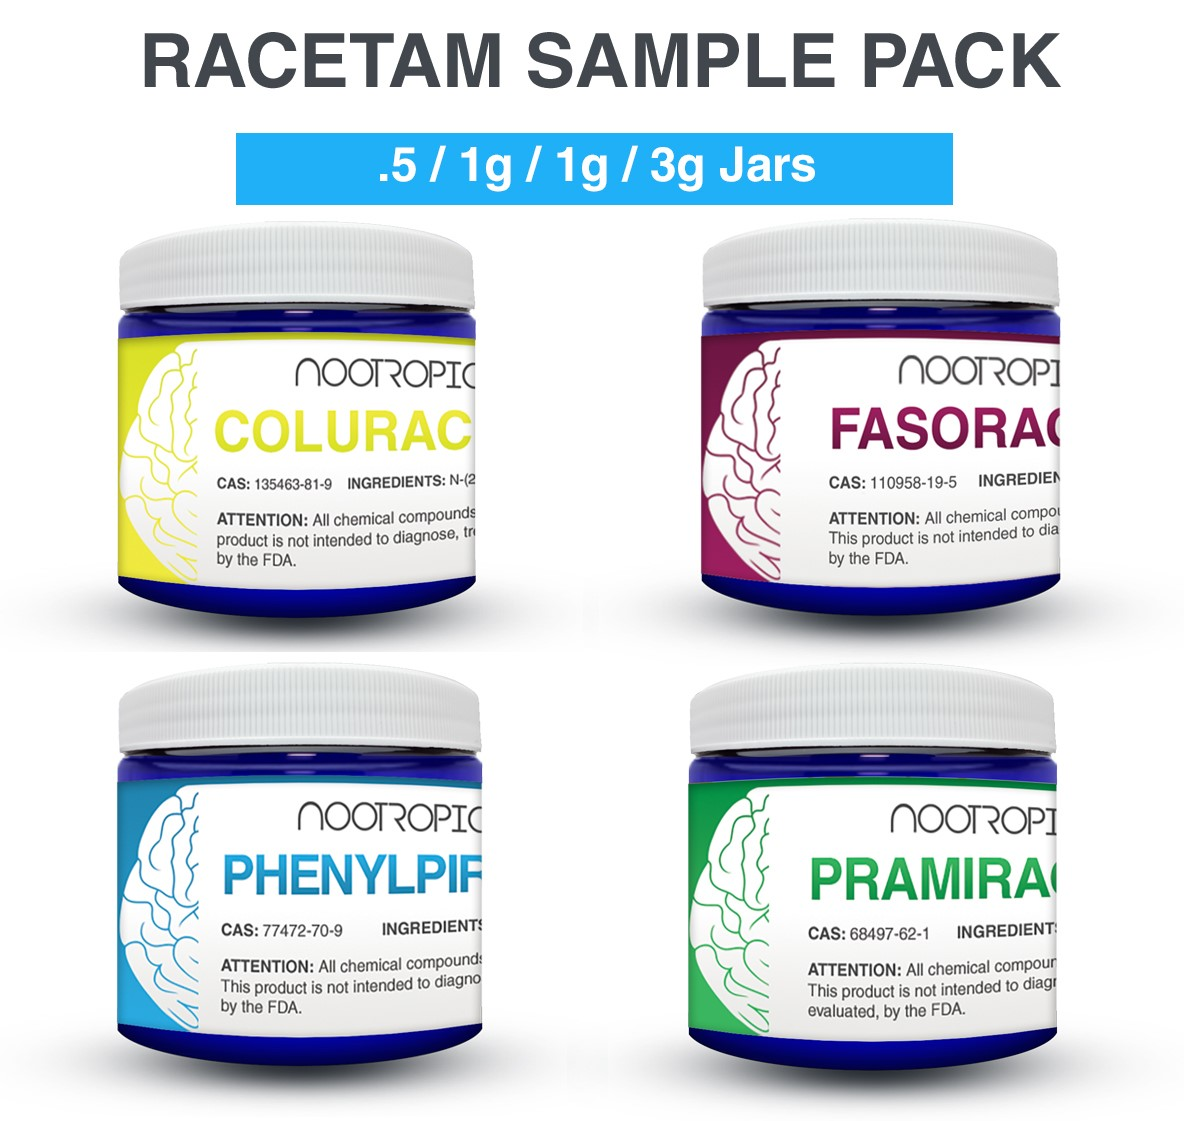 Nootropic Sample Packs